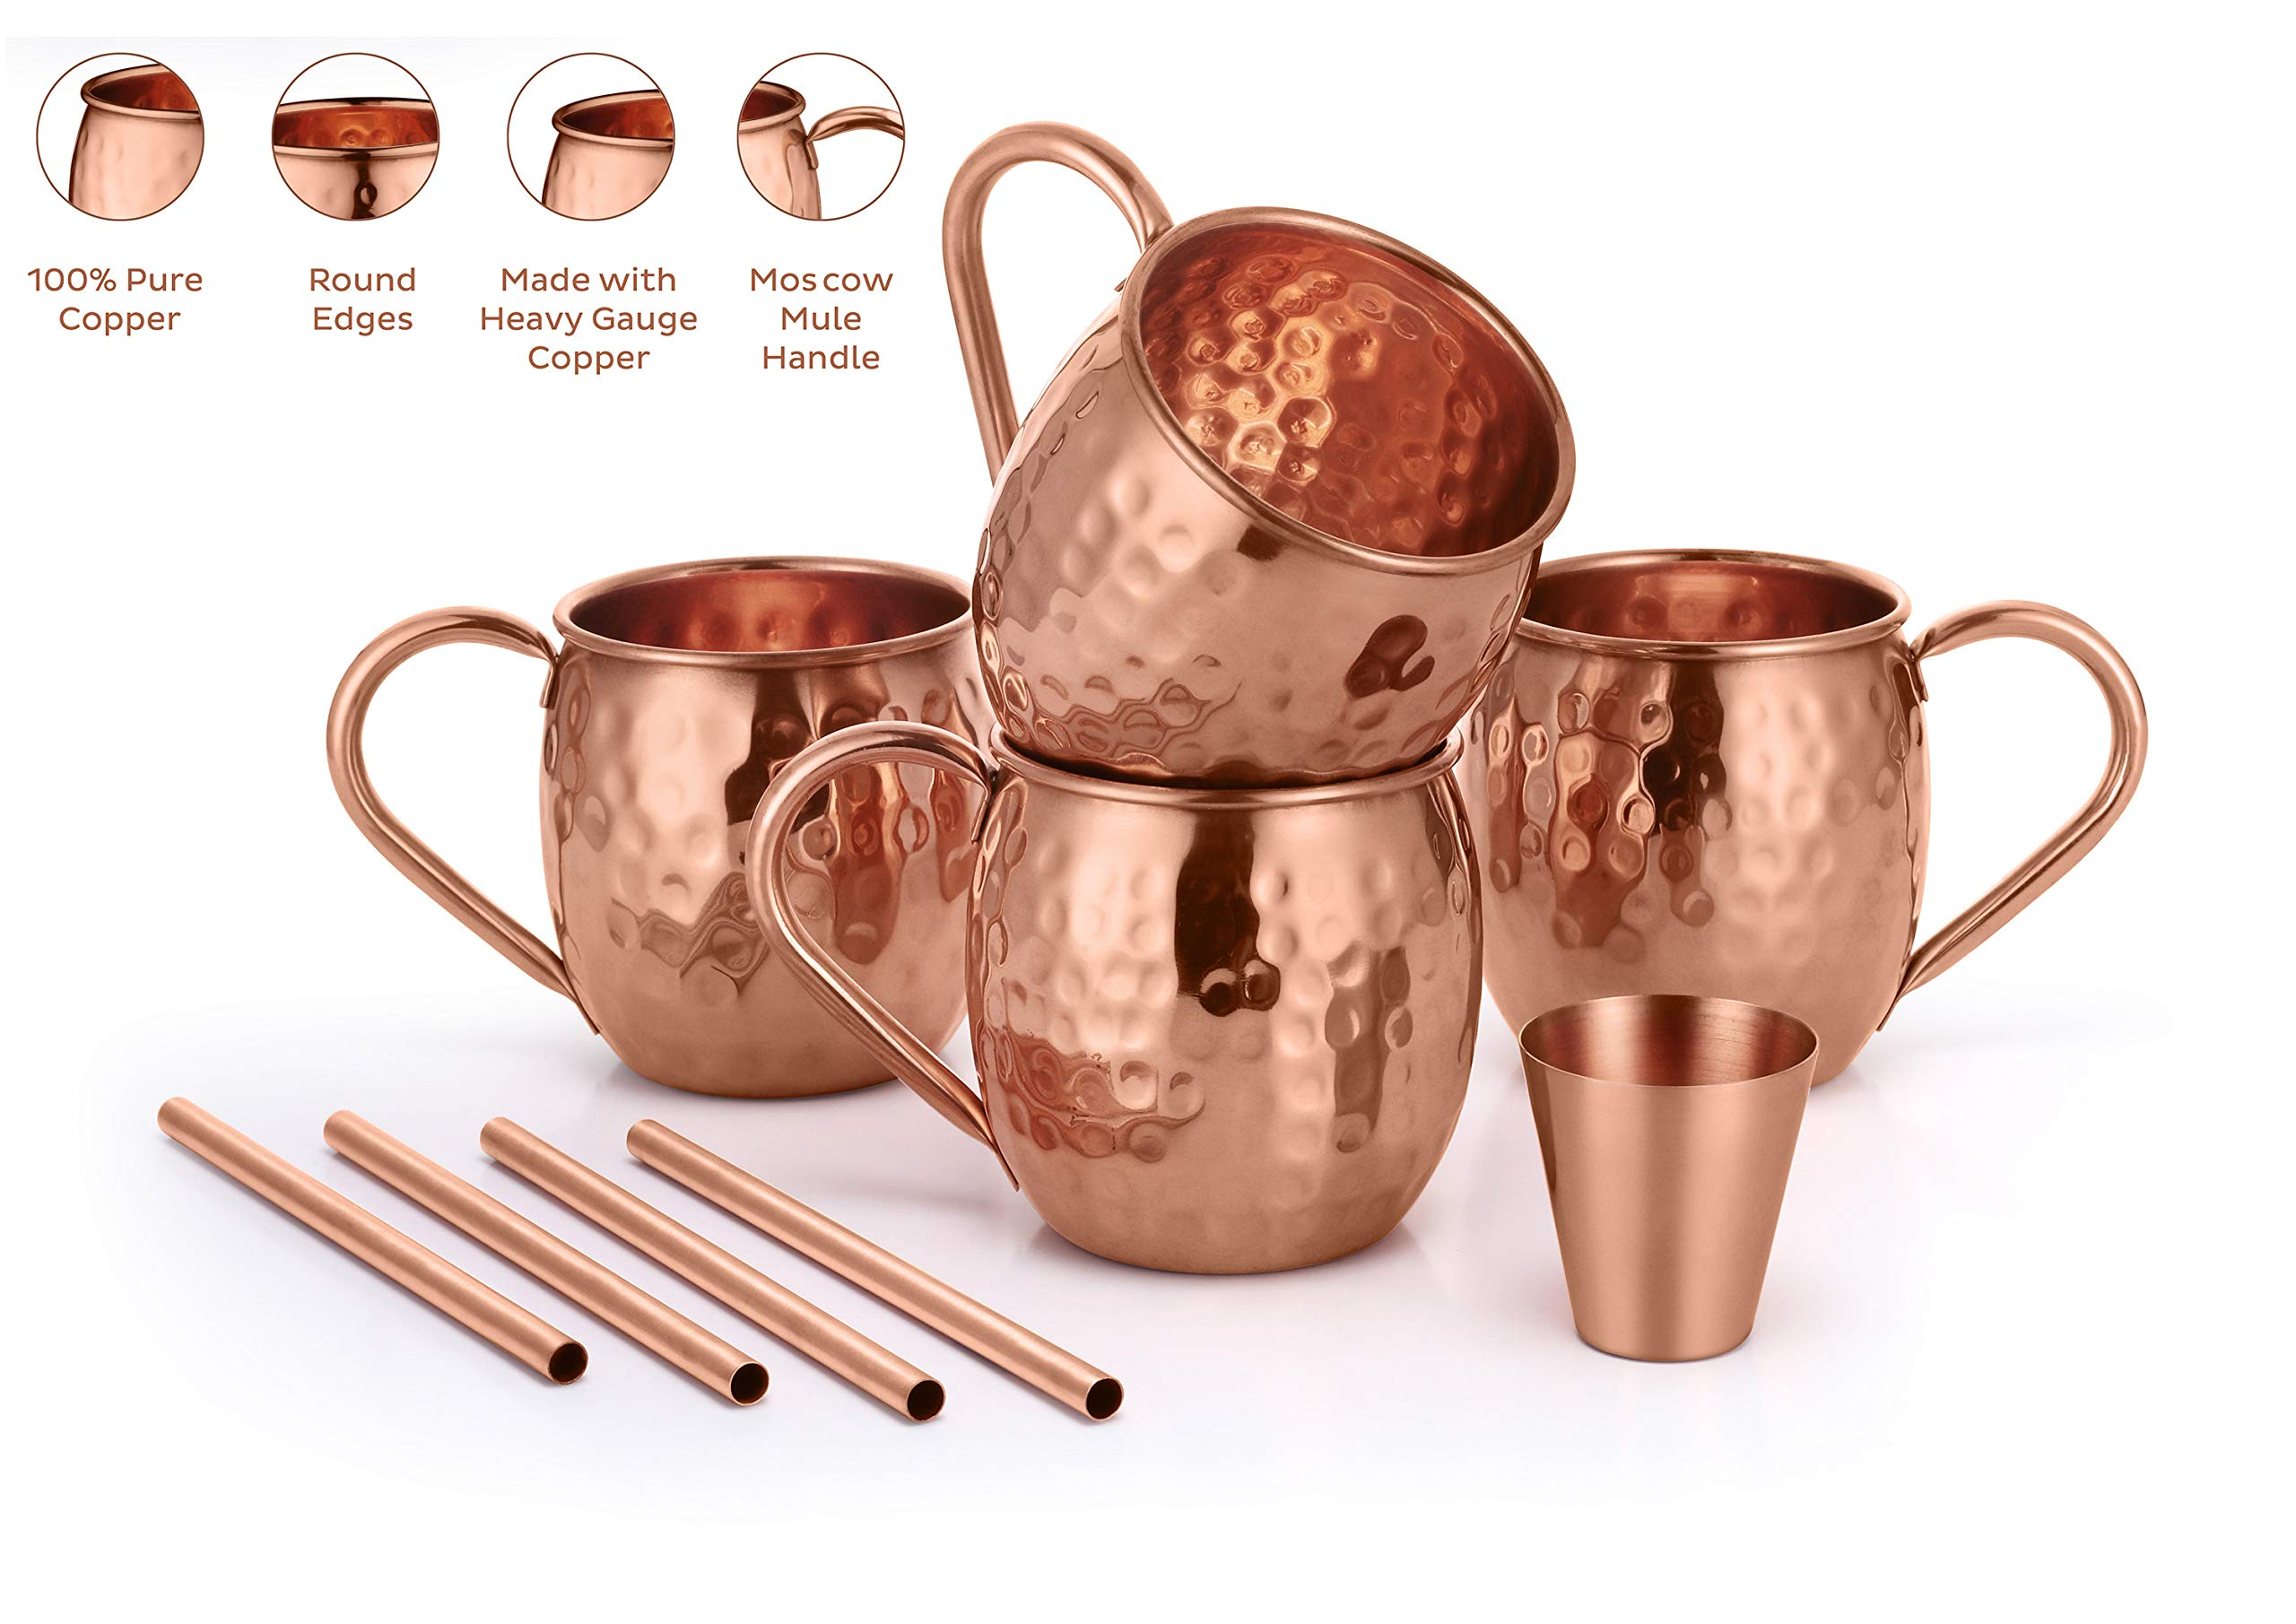 AVADOR Set of 4 Handcrafted 100% Pure Copper Moscow Mule Mugs Hammered Finish 16 Oz. Gift Set Boxed with Shot Glass and Copper Straws by Avador